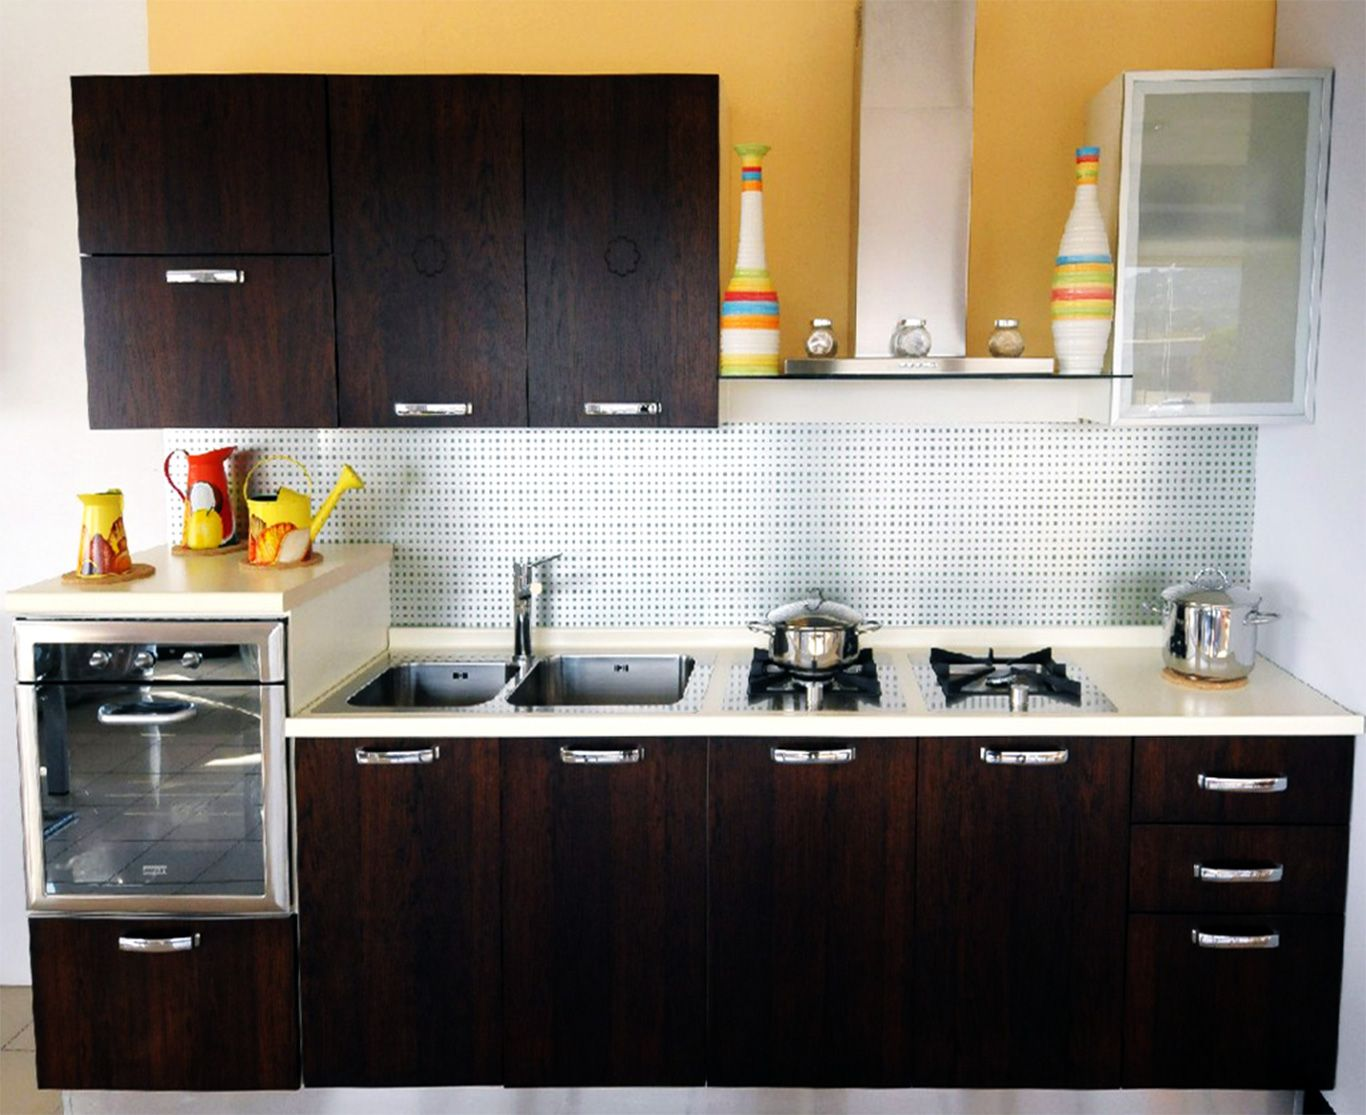 Pune kitchens is the modular kitchen shutters supplier for Small cupboard designs